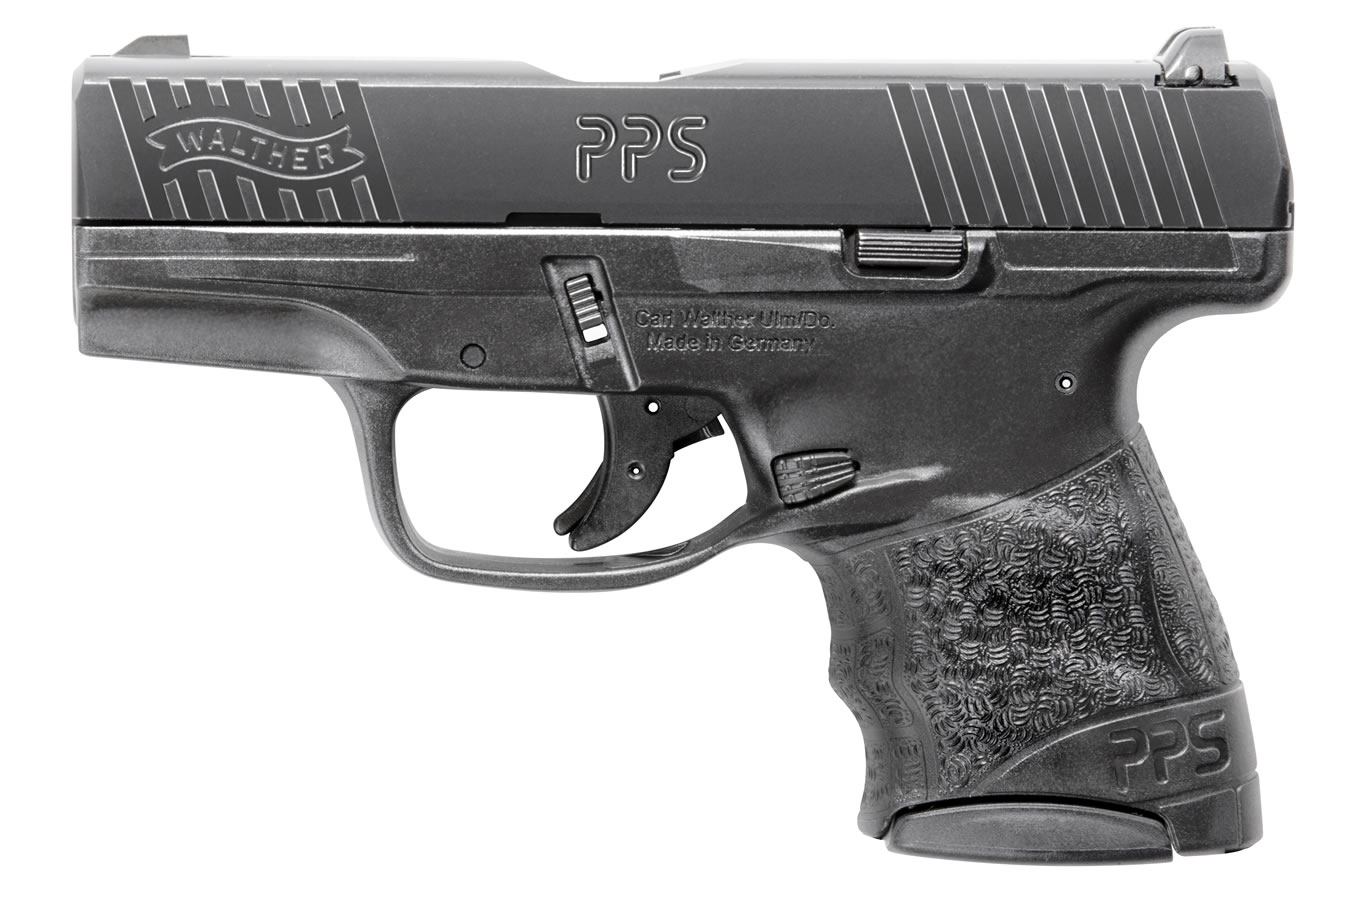 No. 20 Best Selling: WALTHER PPS M2 9X19 LE EDITION PS NIGHT SIGHTS